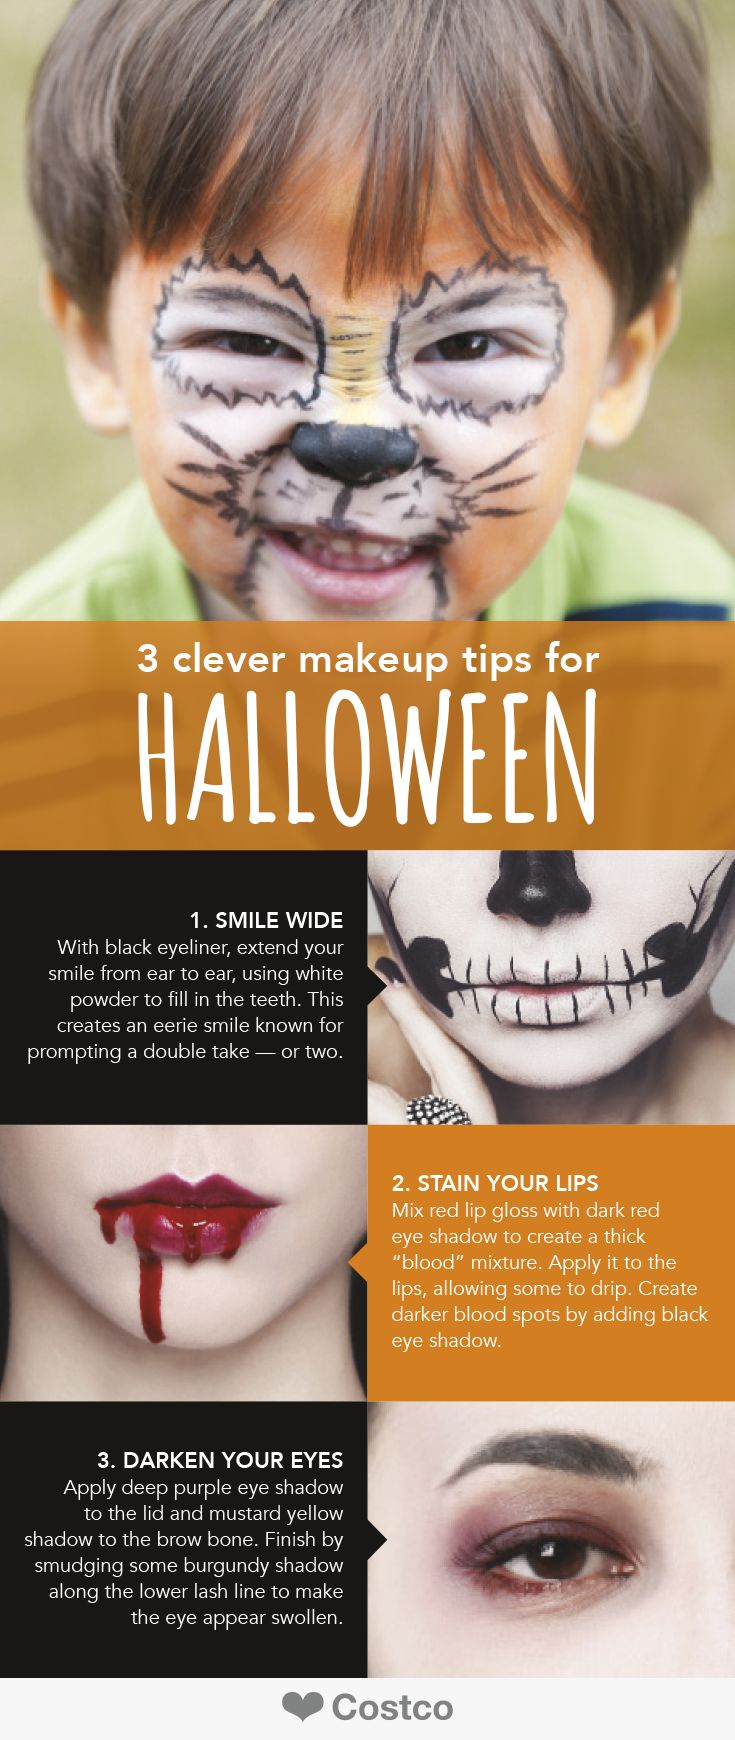 This Halloween, steal the show and spook your friends using these three clever DIY makeup tips and tricks.